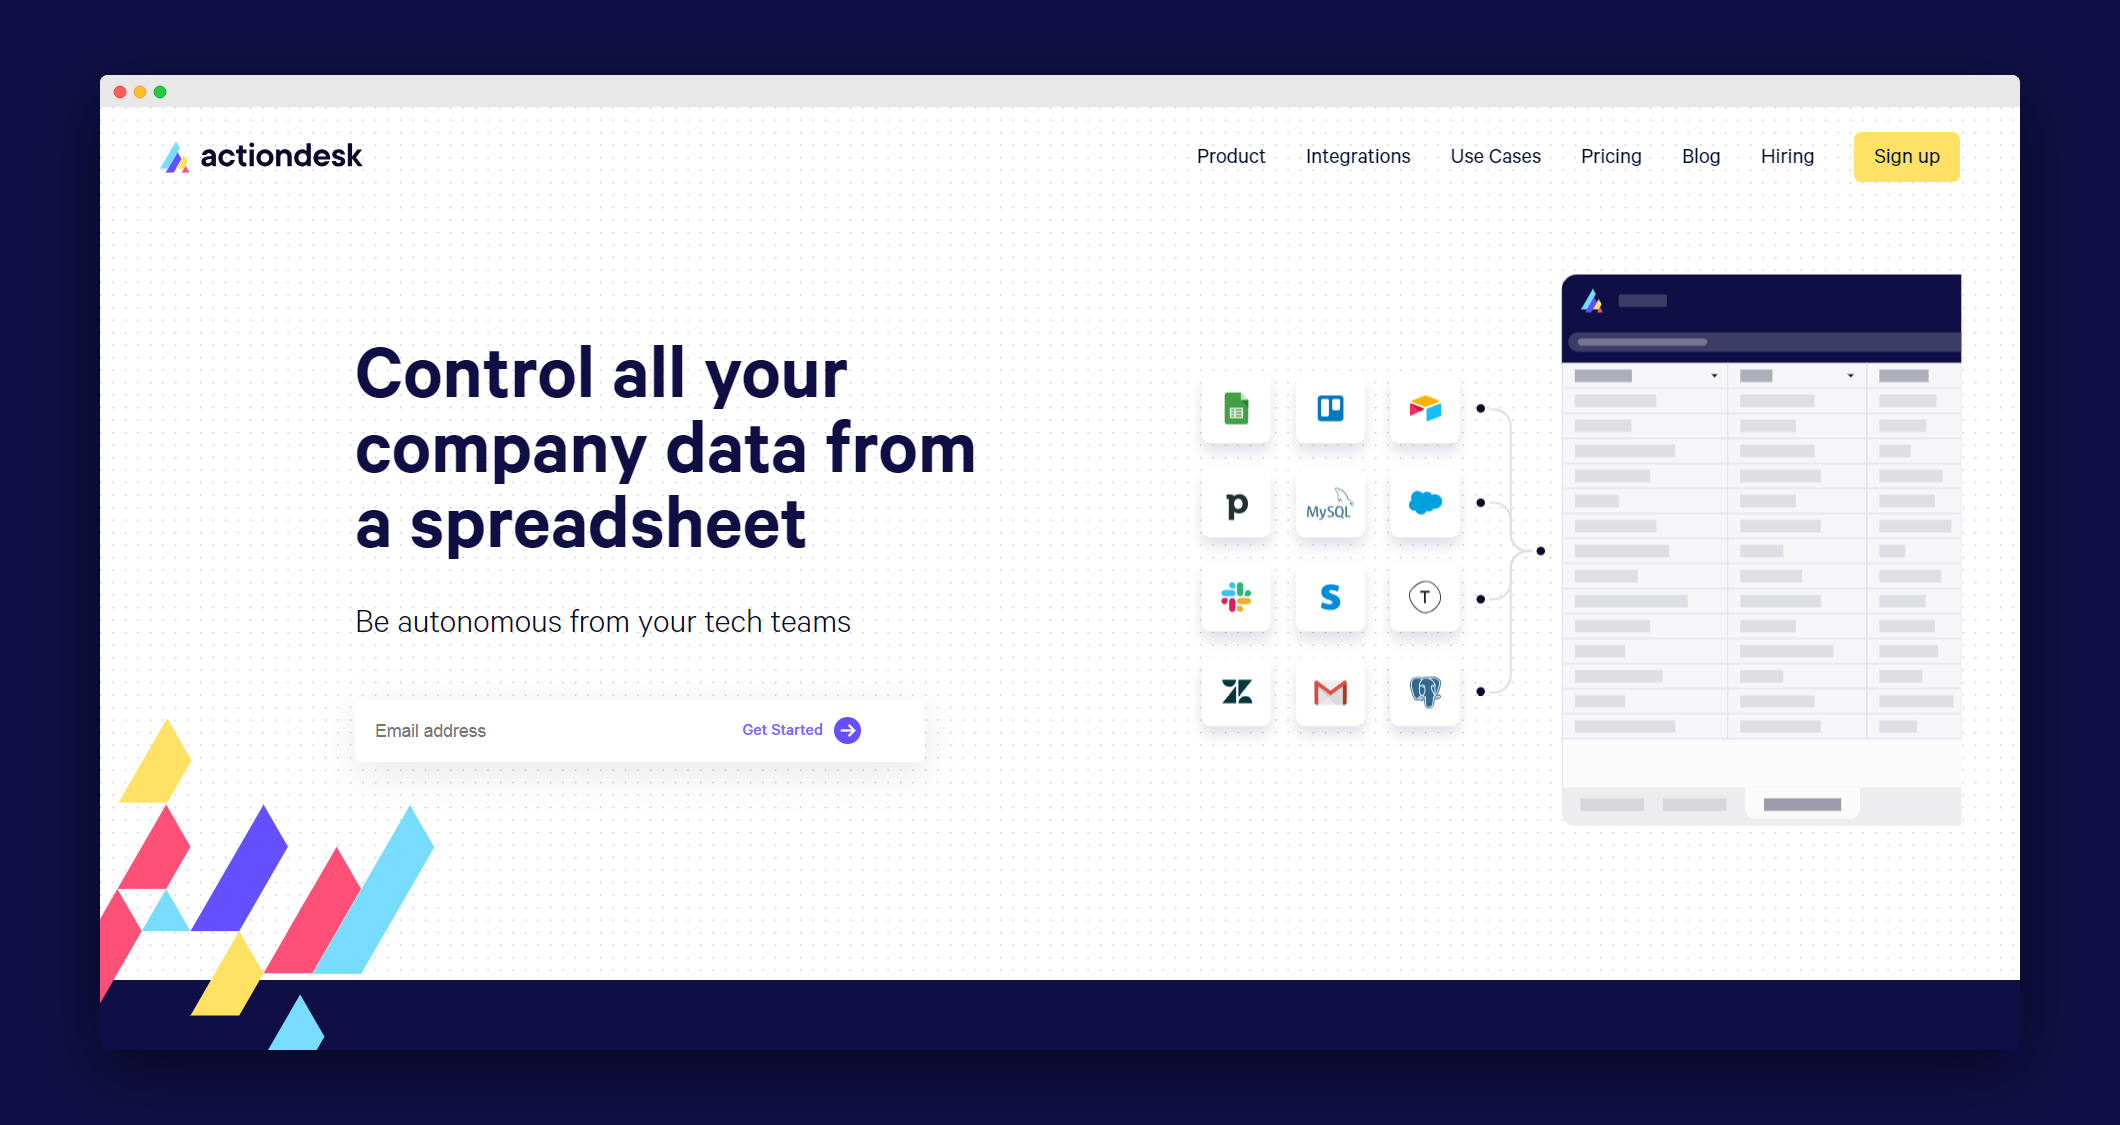 Actiondesk